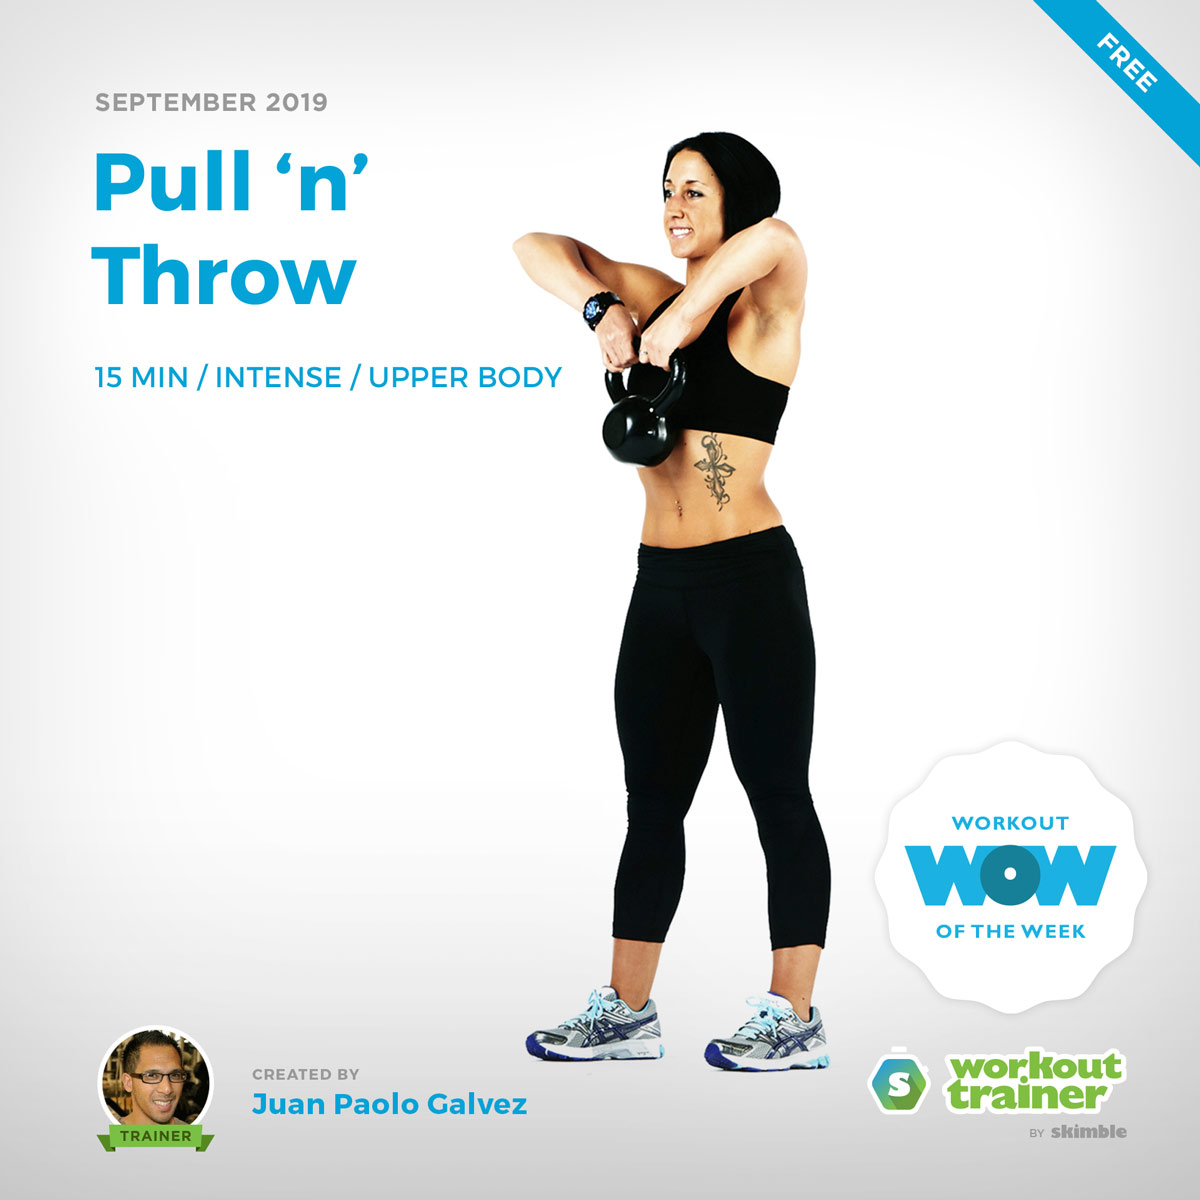 Workout Trainer by Skimble: Free Workout of the Week: Pull 'n' Throw by Juan Paolo Galvez